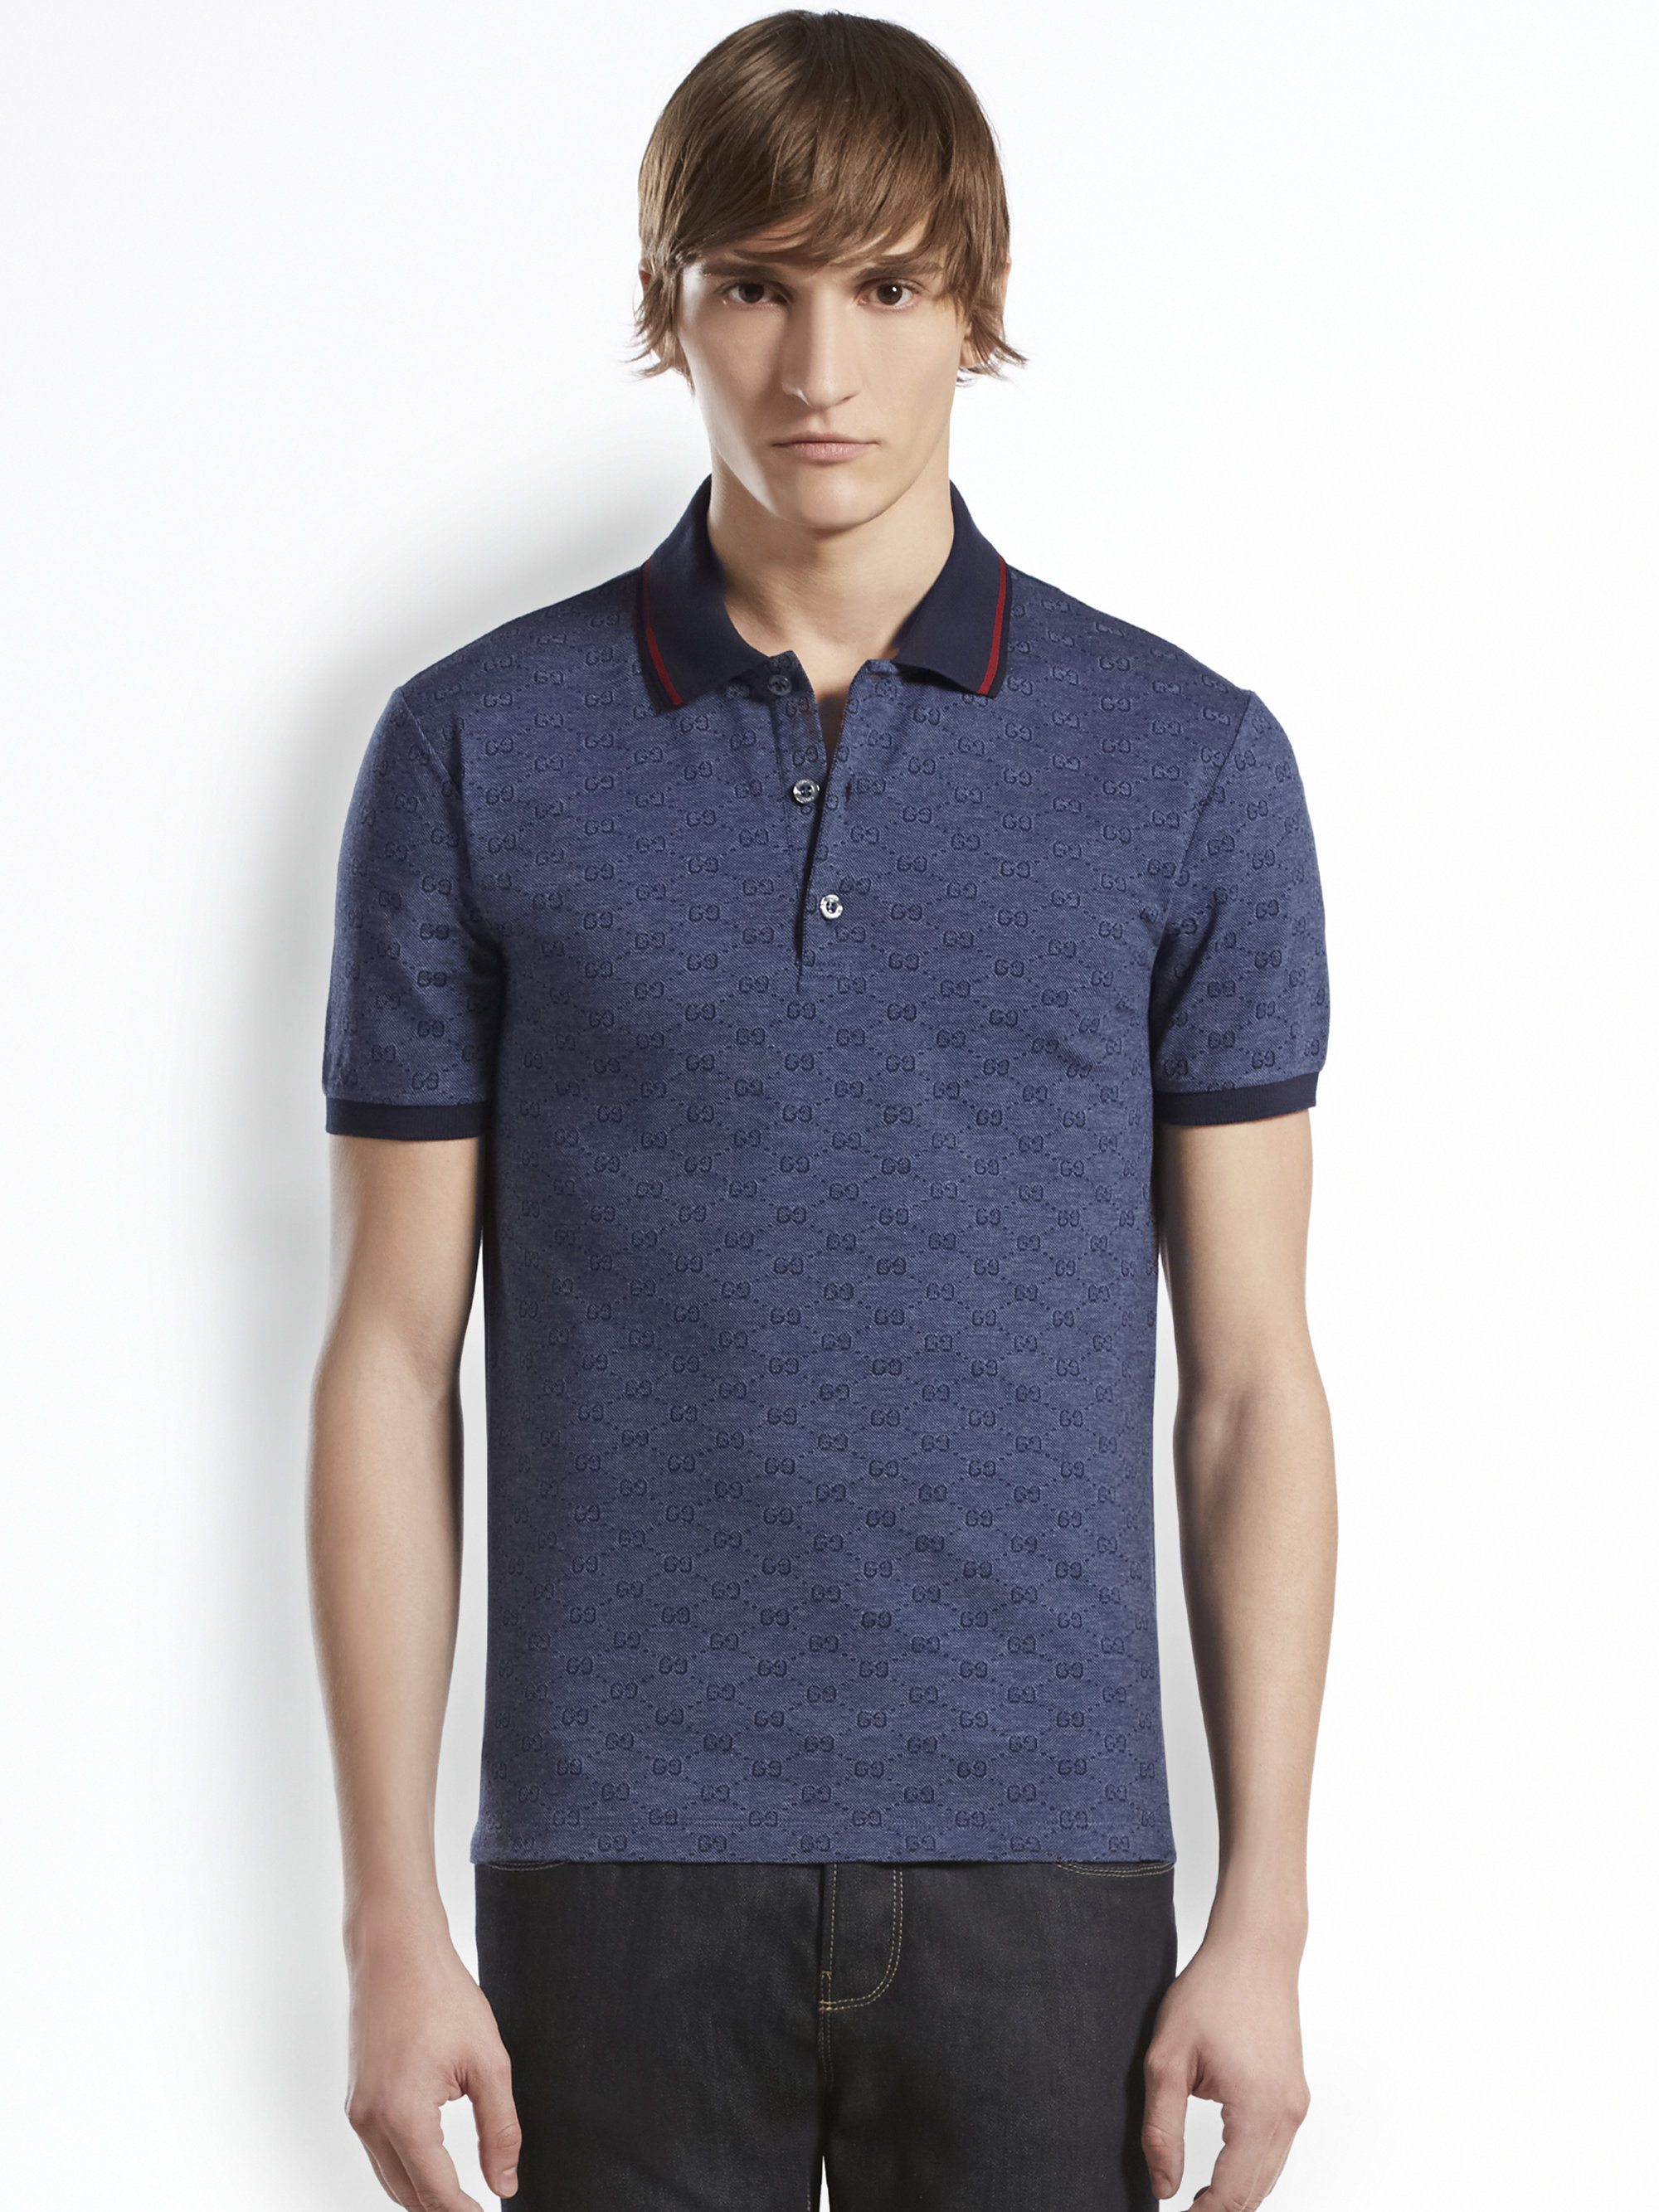 39dfdbde09b17 Gucci Gg Jacquard Cotton Pique Polo in Blue for Men - Lyst